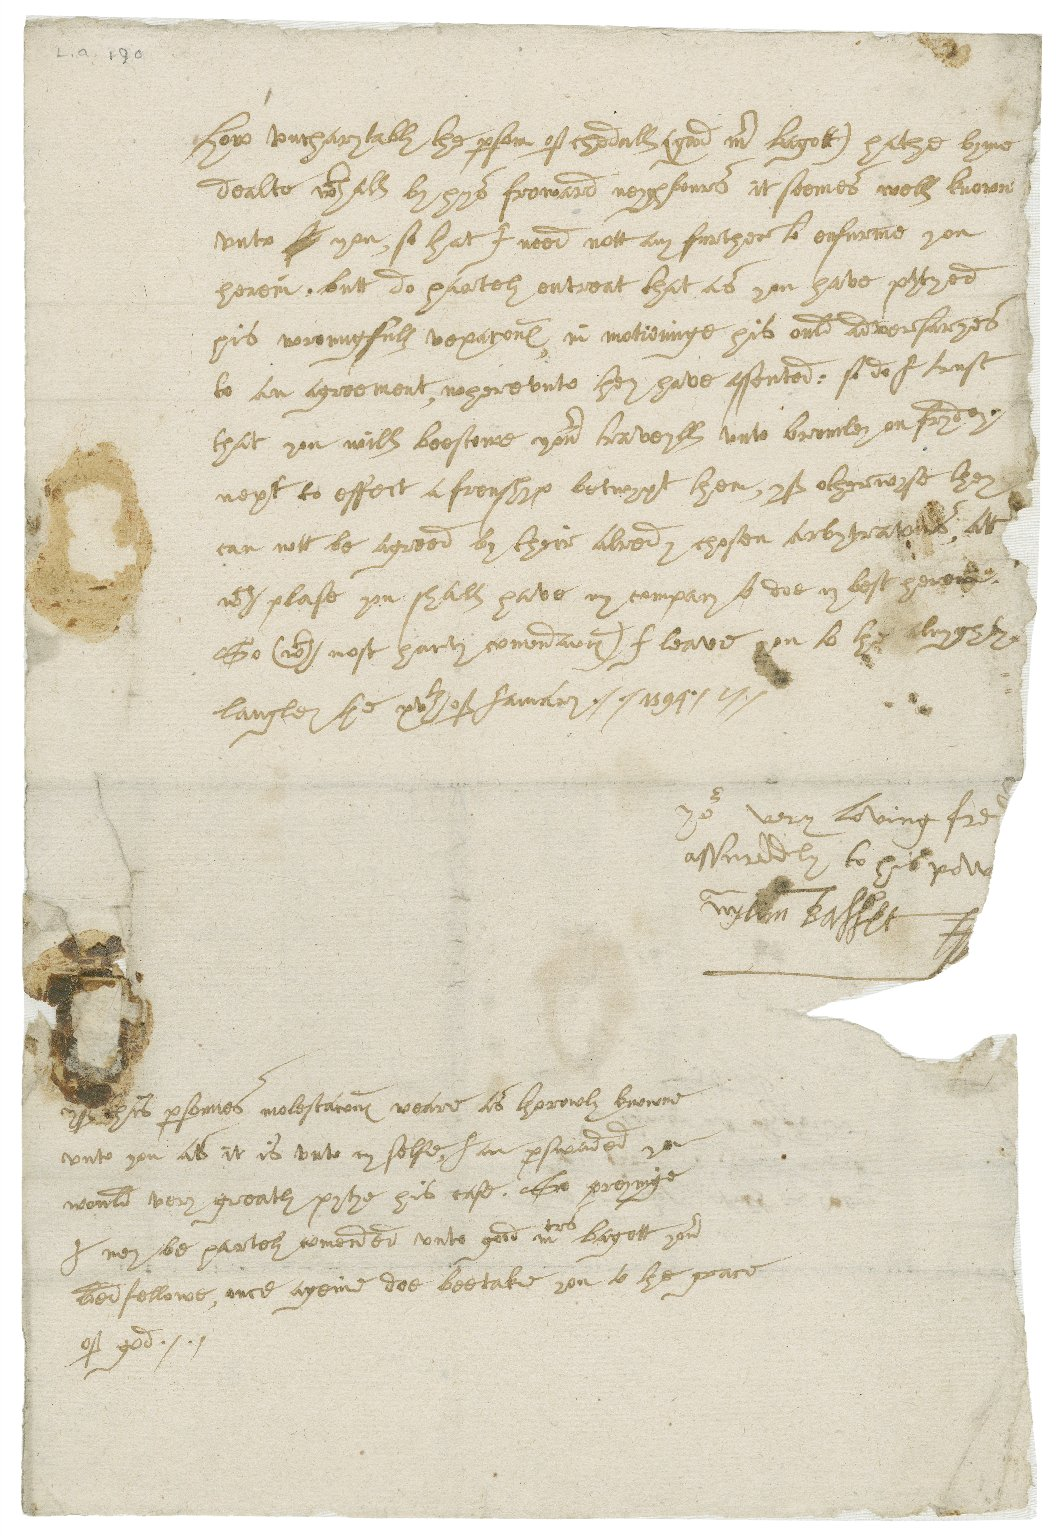 Letter from William Basset (of Blore), Langley, to Richard Bagot